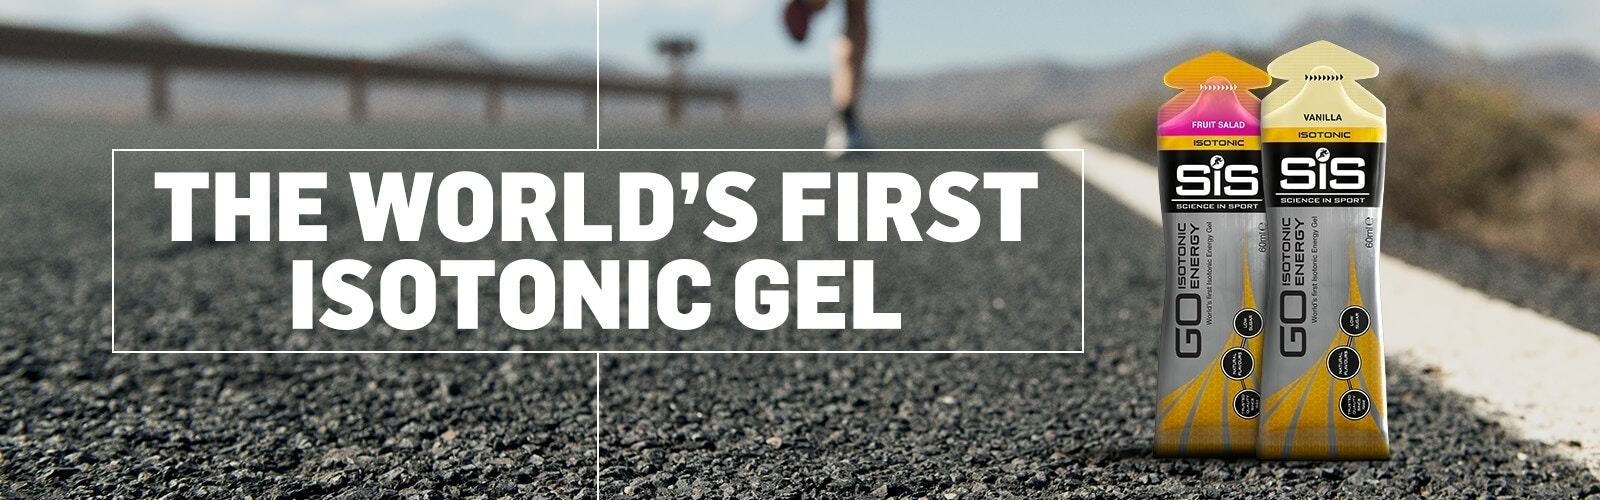 SIS - The world's first Isotonic Energy Gel